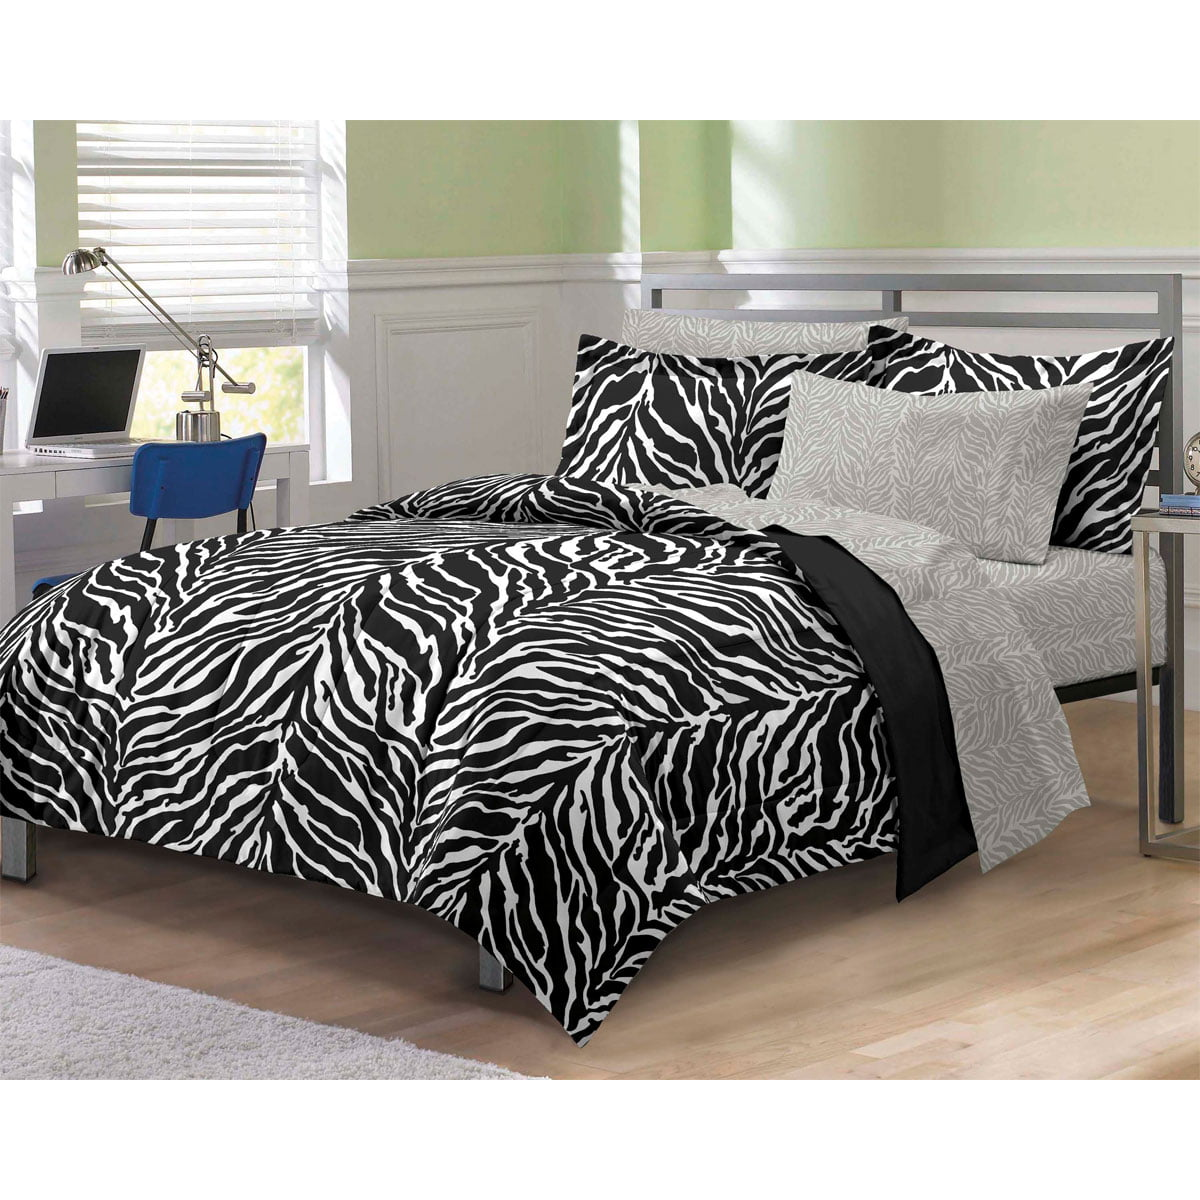 Epic My Room Zebra Complete Bed in a Bag Bedding Set Black White Walmart